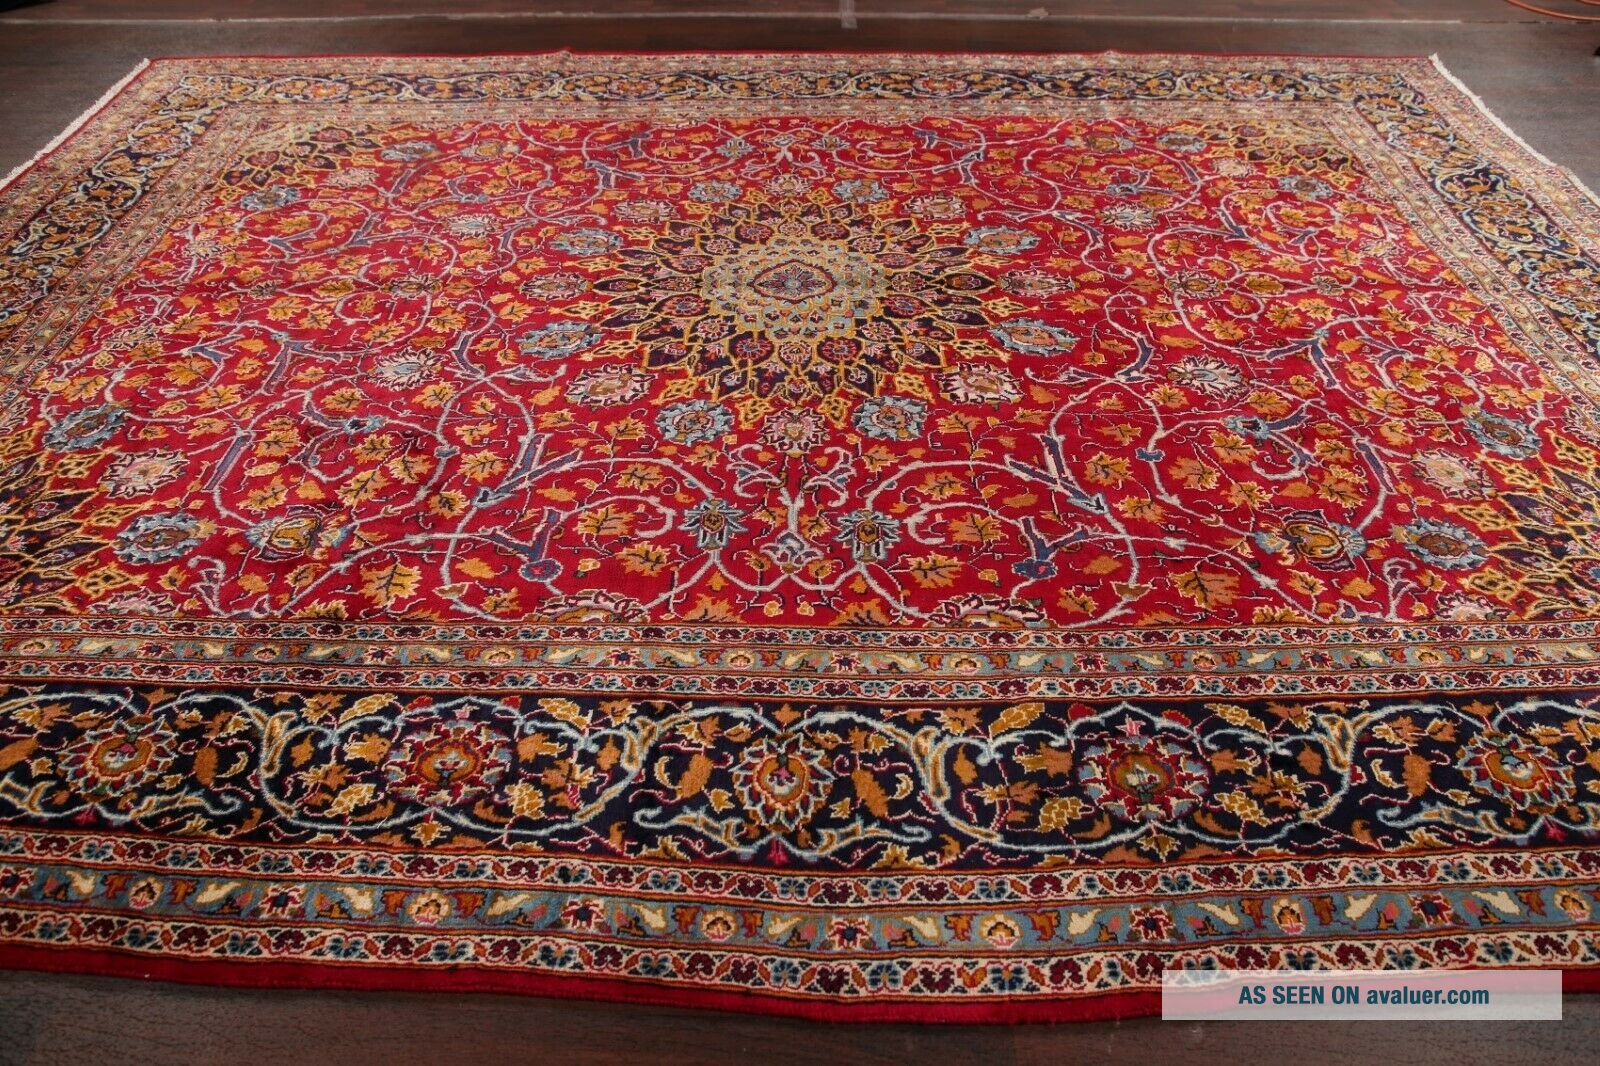 Vintage Kashmar Persian Area Rug VIBRANT RED Oriental Hand - Knotted Floral 10x12